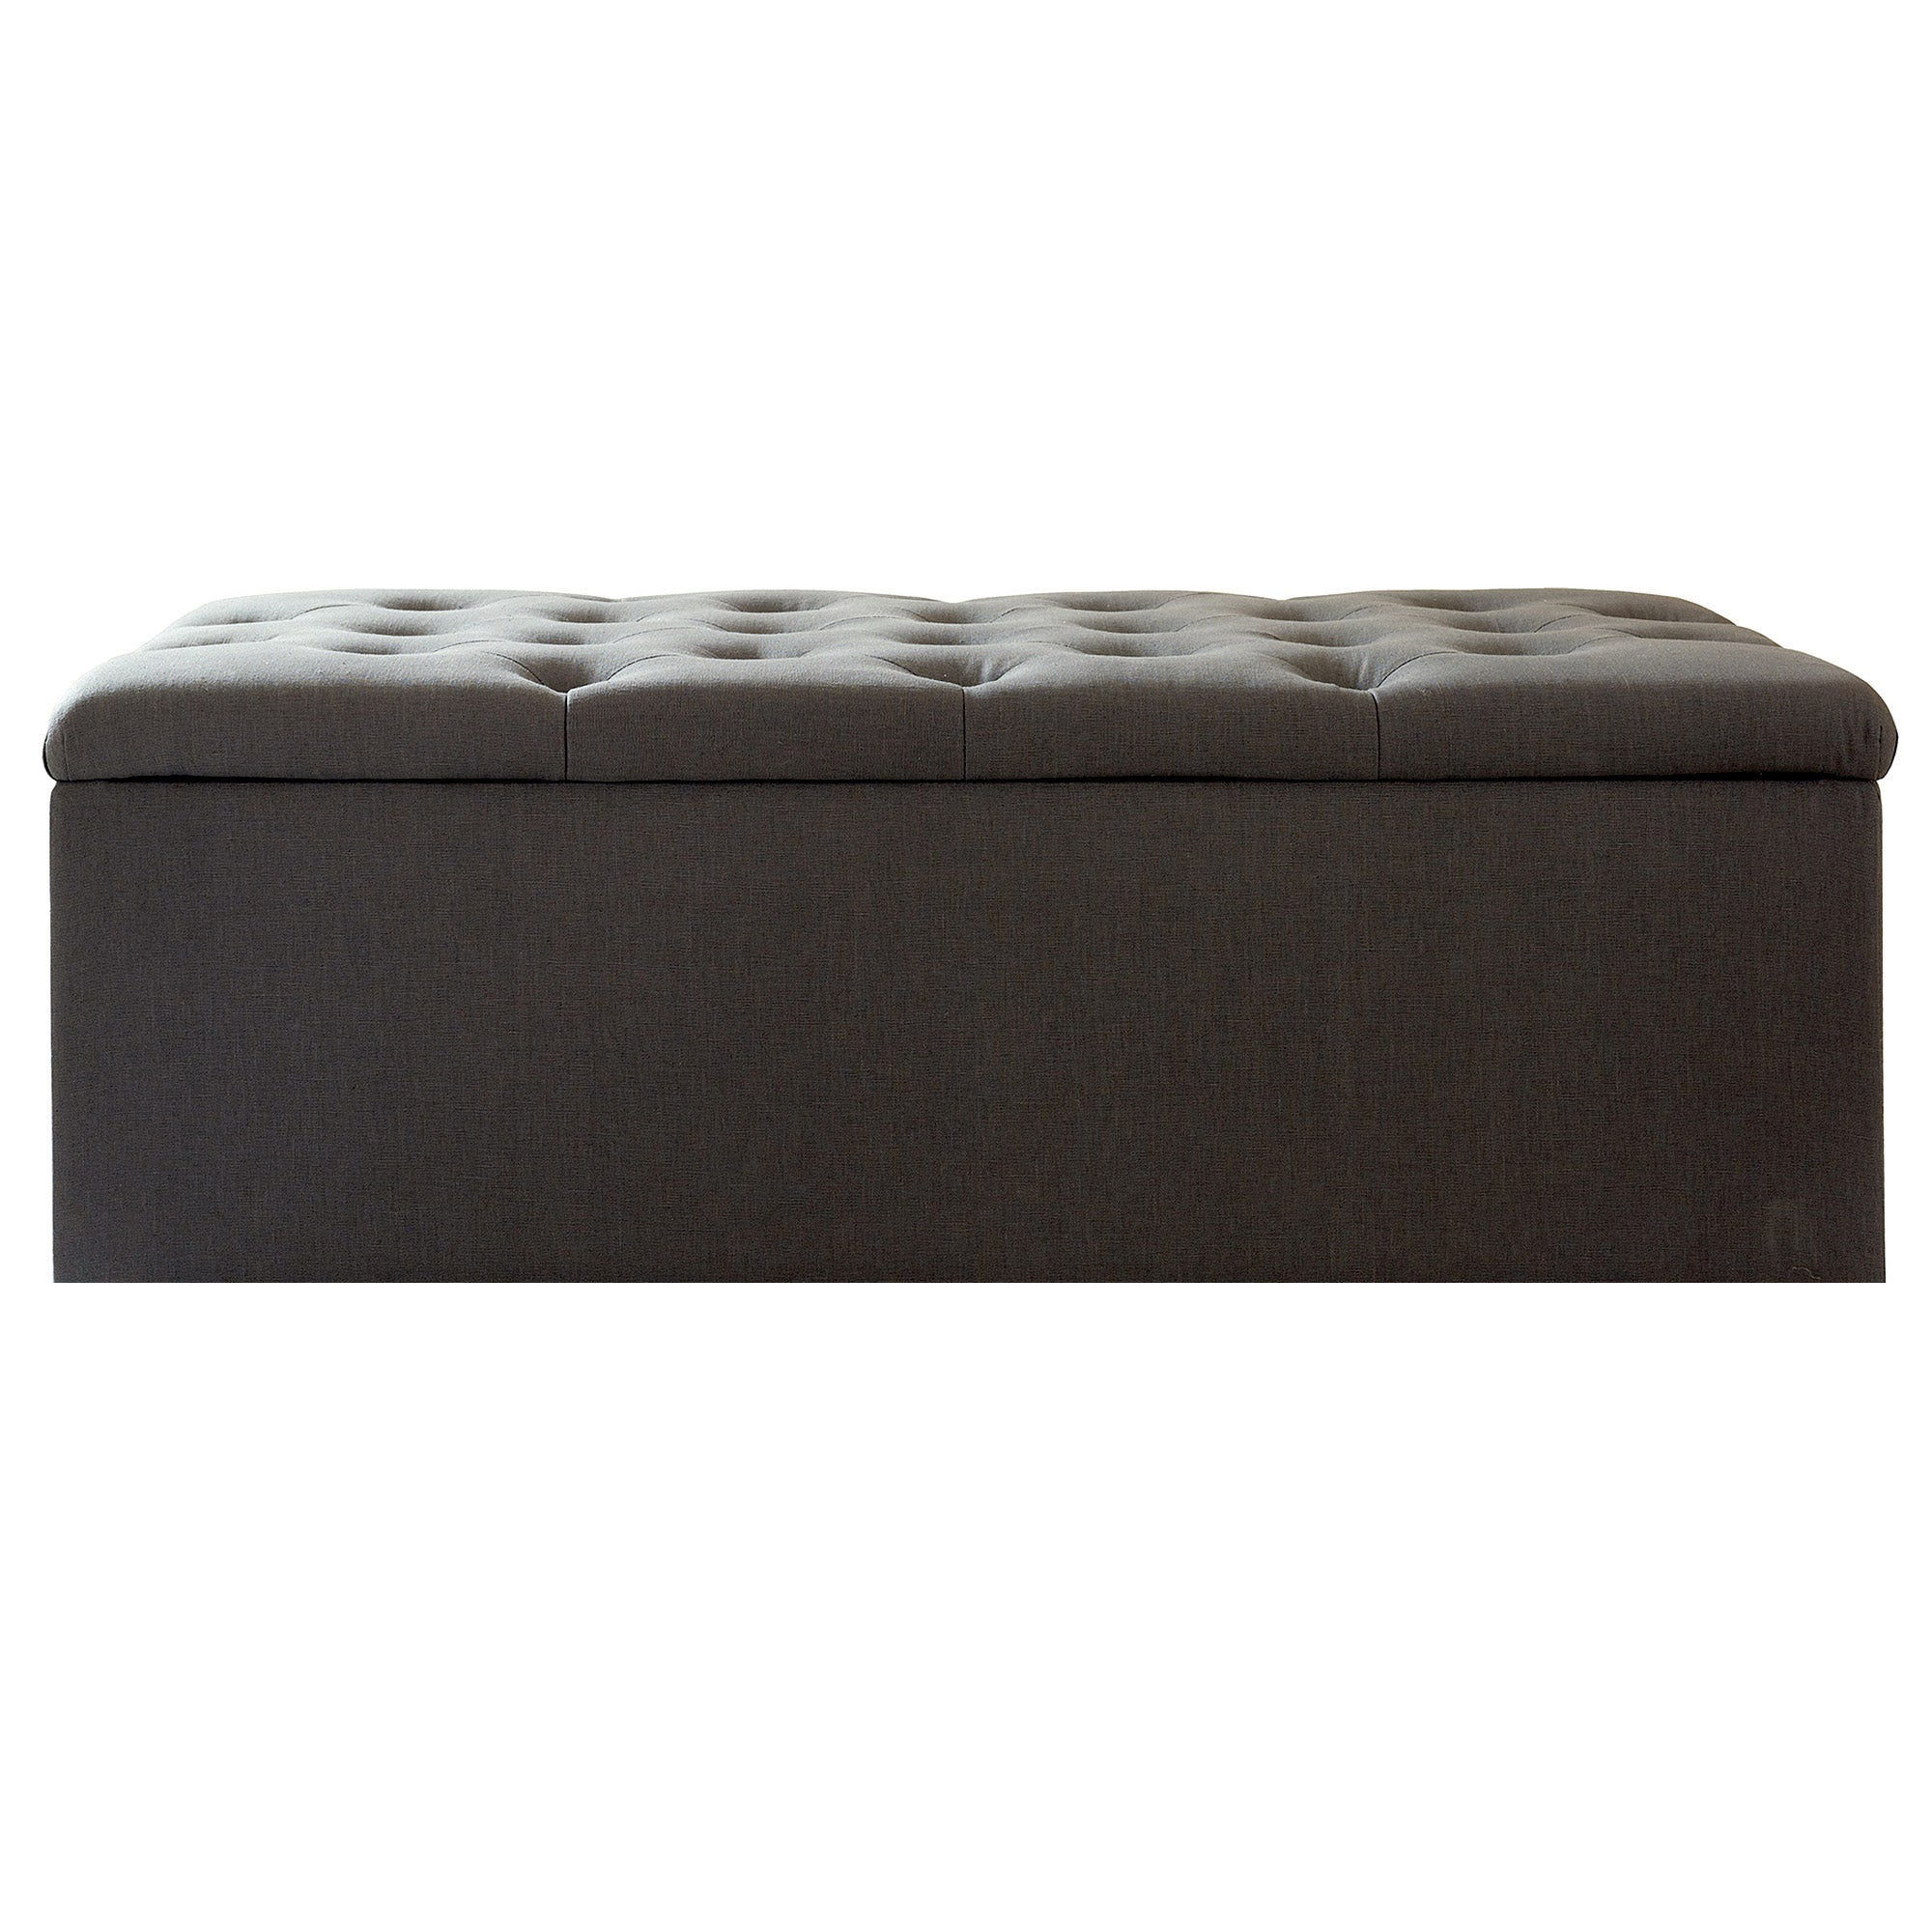 Antoinette Charcoal Bed Ottoman